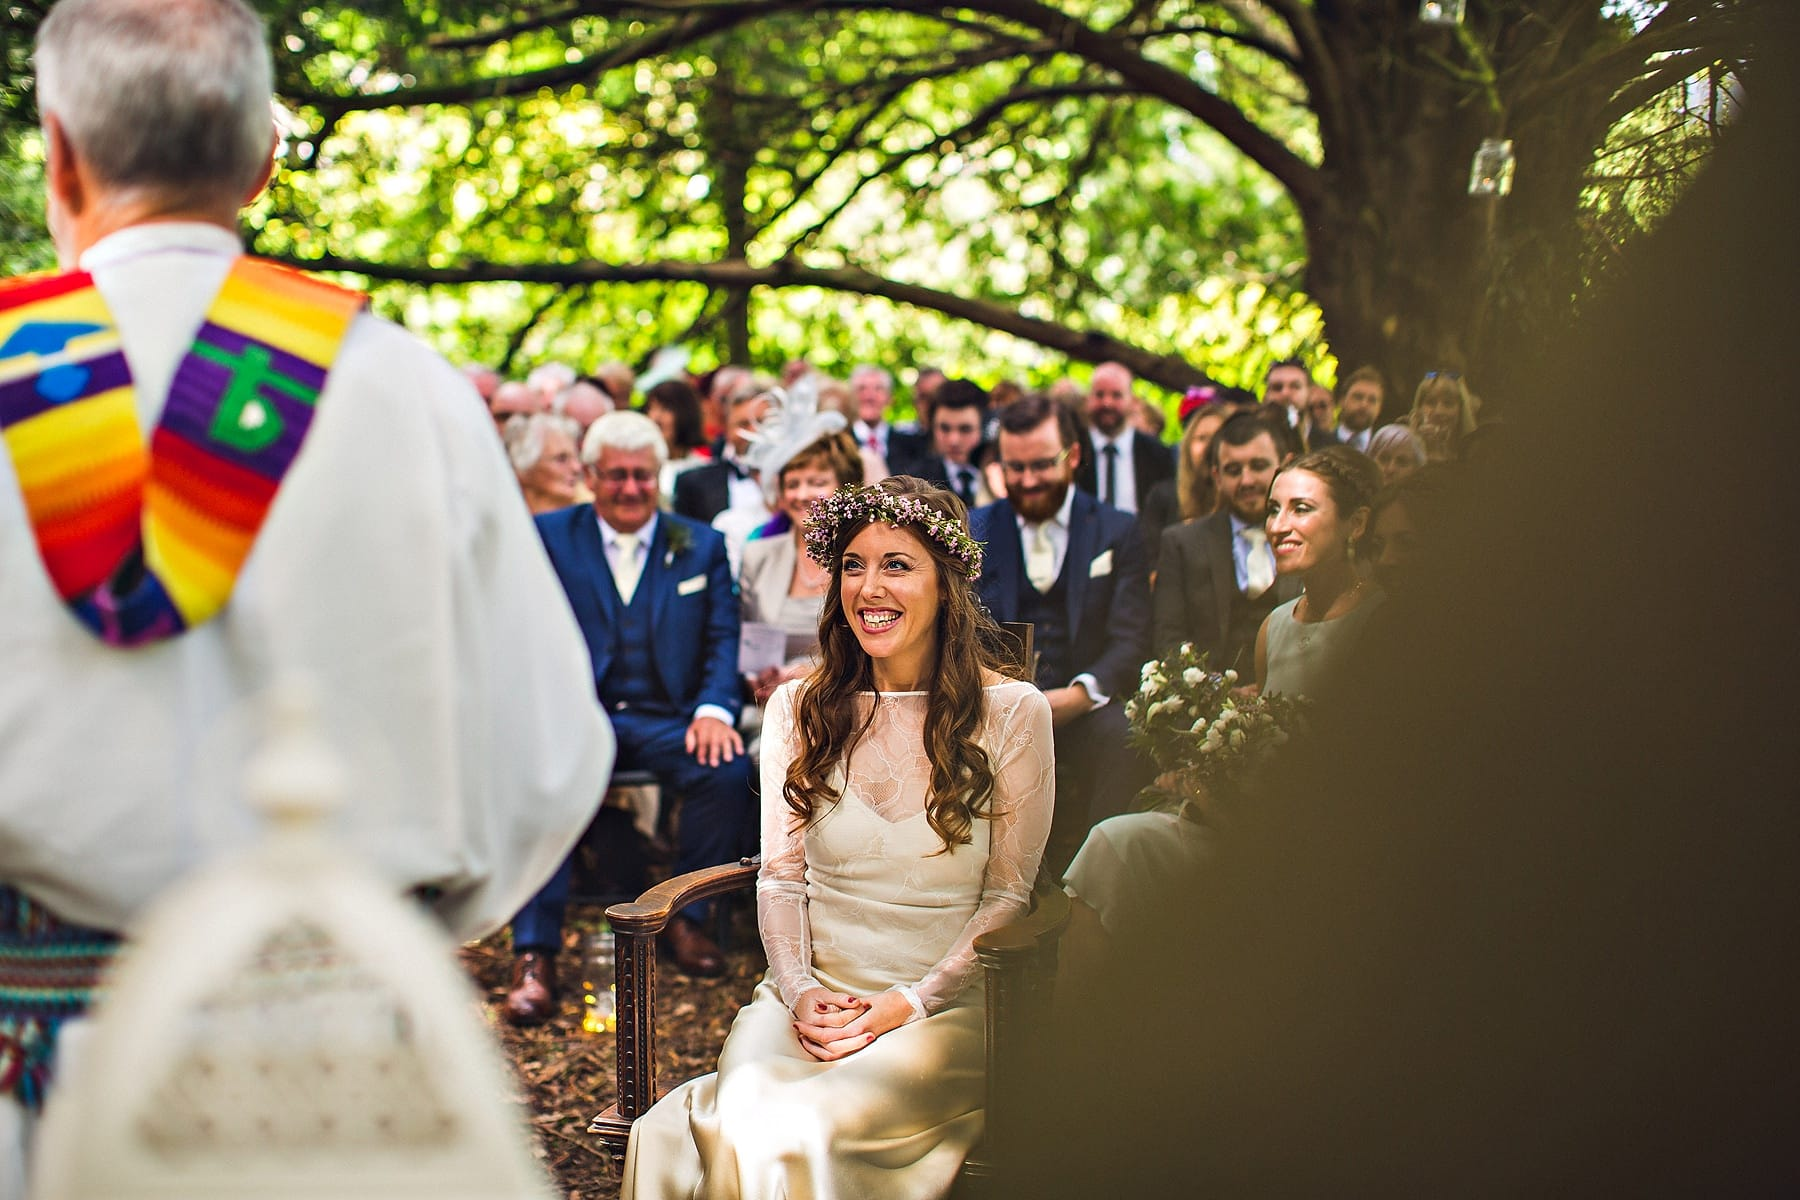 Bride Outdoor Ceremony Markree Castle Sligo Ireland Wedding Photographer,